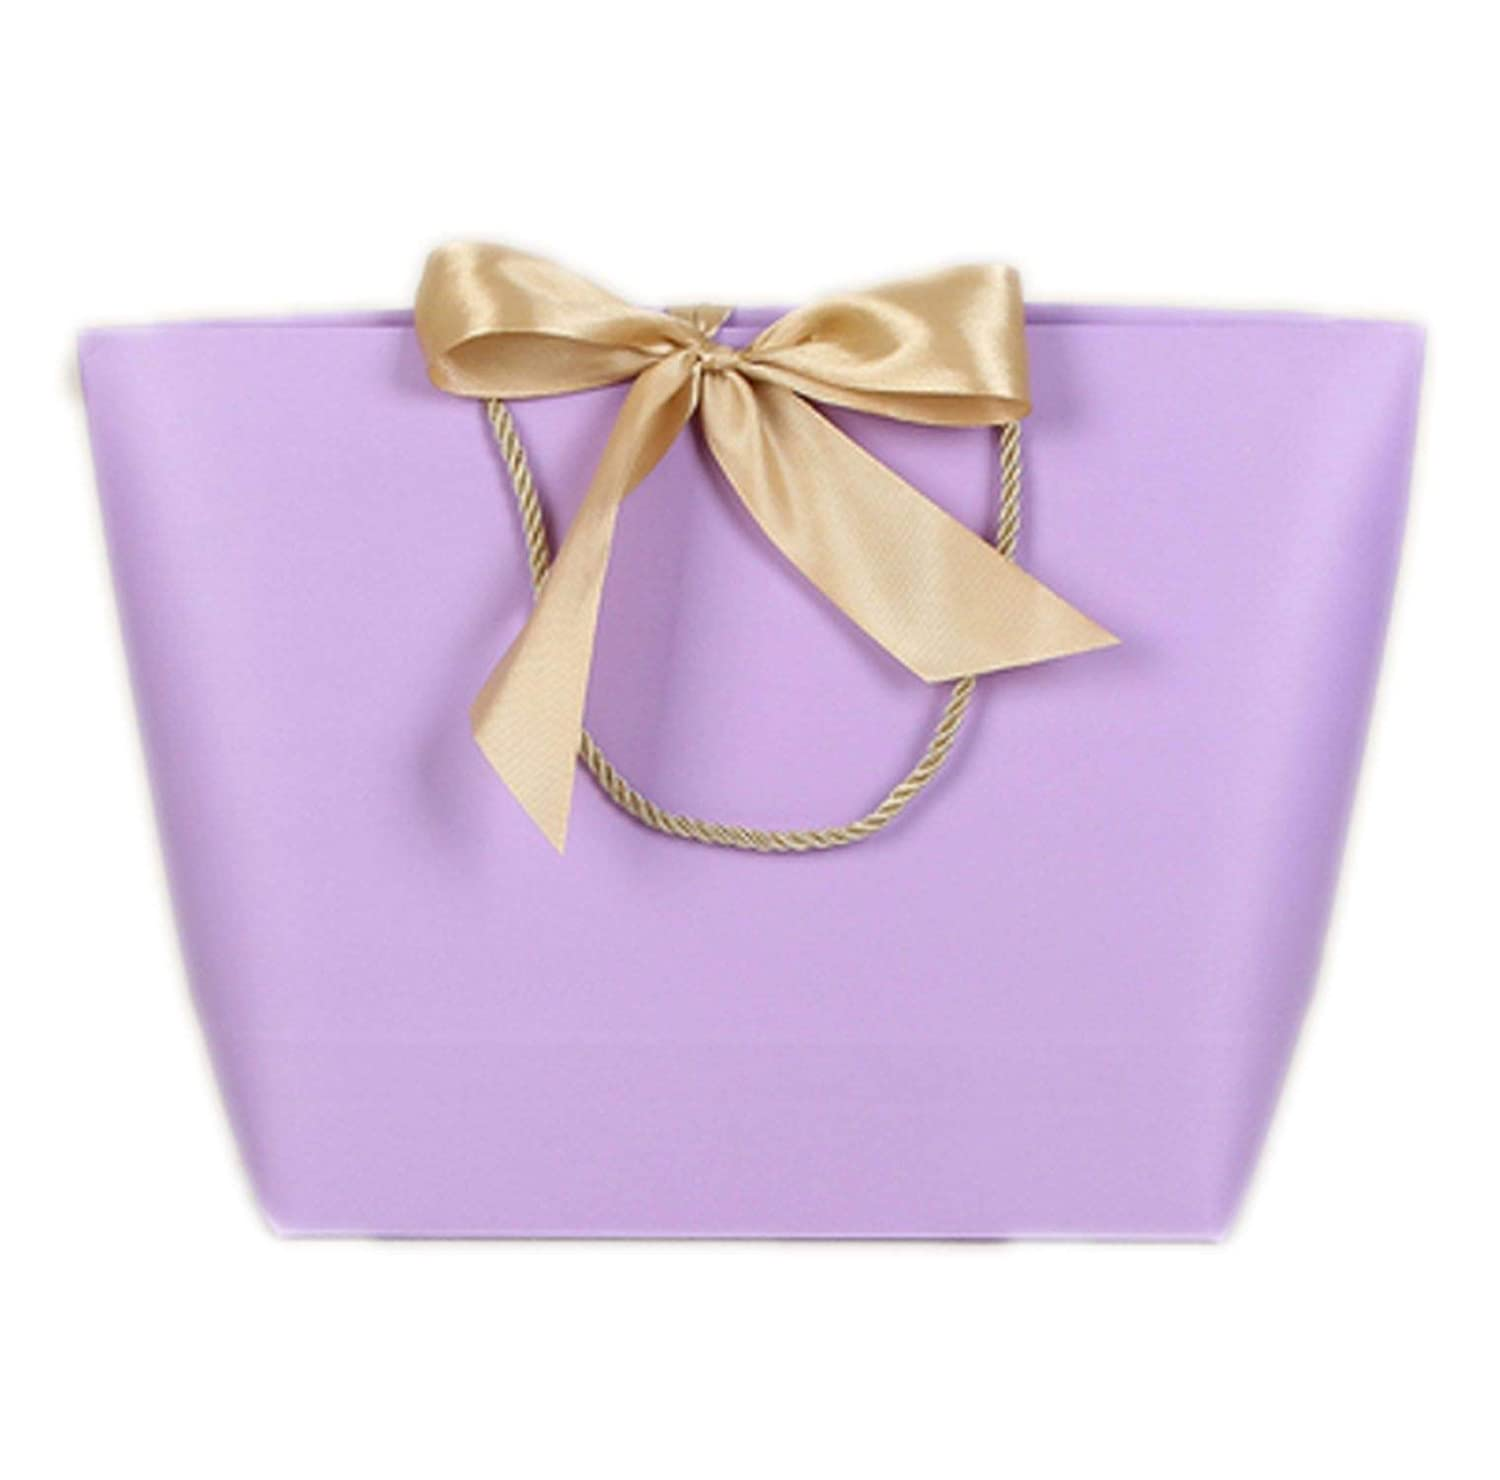 I 46x33x13cm wall8CC Large Size gold Present Box for Pajamas Clothes Books Packaging gold Handle Paper Box Bags Kraft Paper Gift Bag With Handles,B,Mixed Size